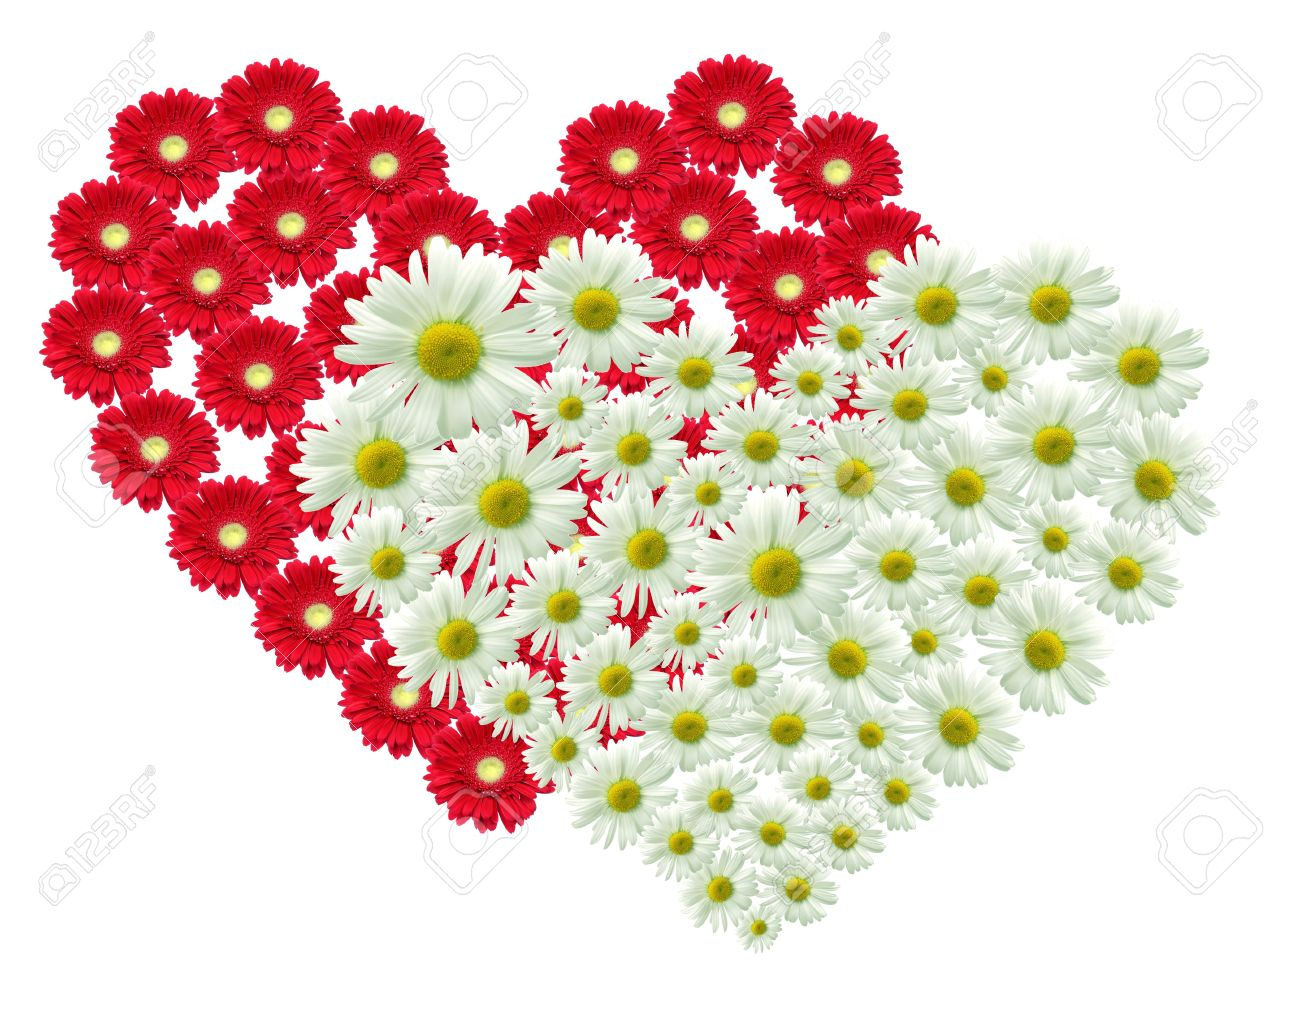 2 big heart made of red and white flowers stock photo picture and